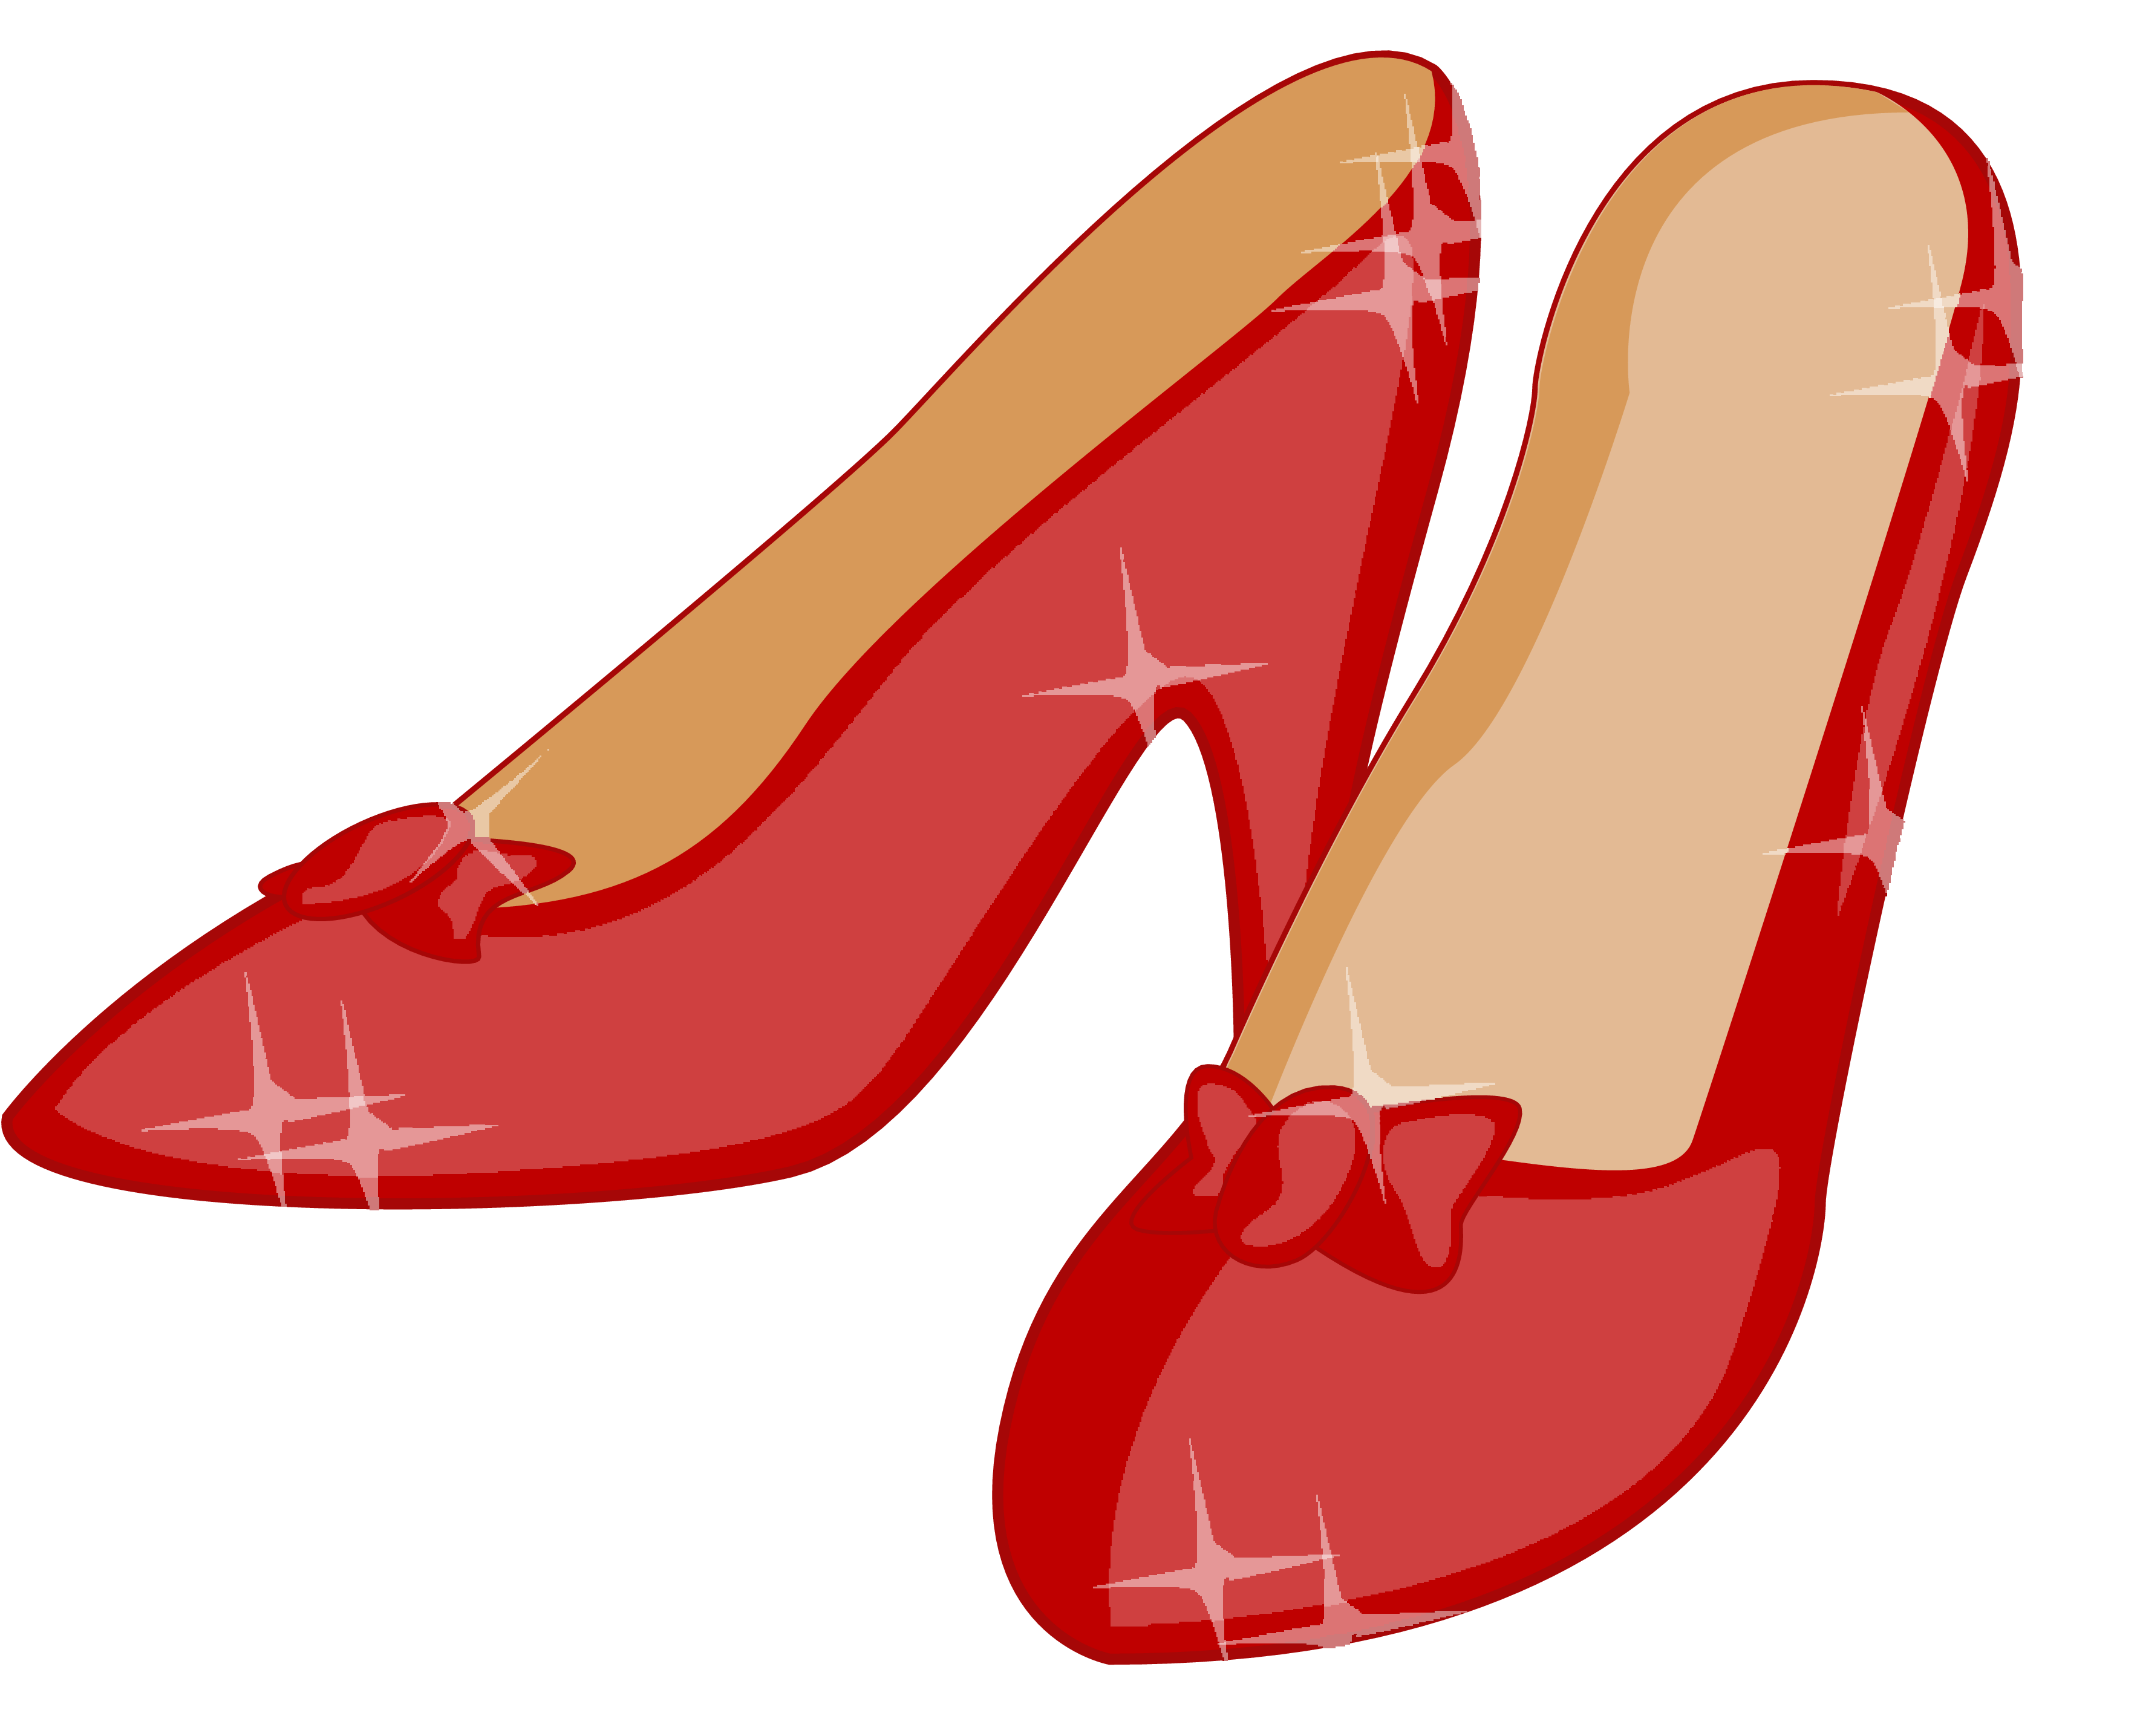 Wizard of oz clipart apple tree image black and white stock ruby slipper graphic | House pic project | Pinterest | Shoe clips ... image black and white stock